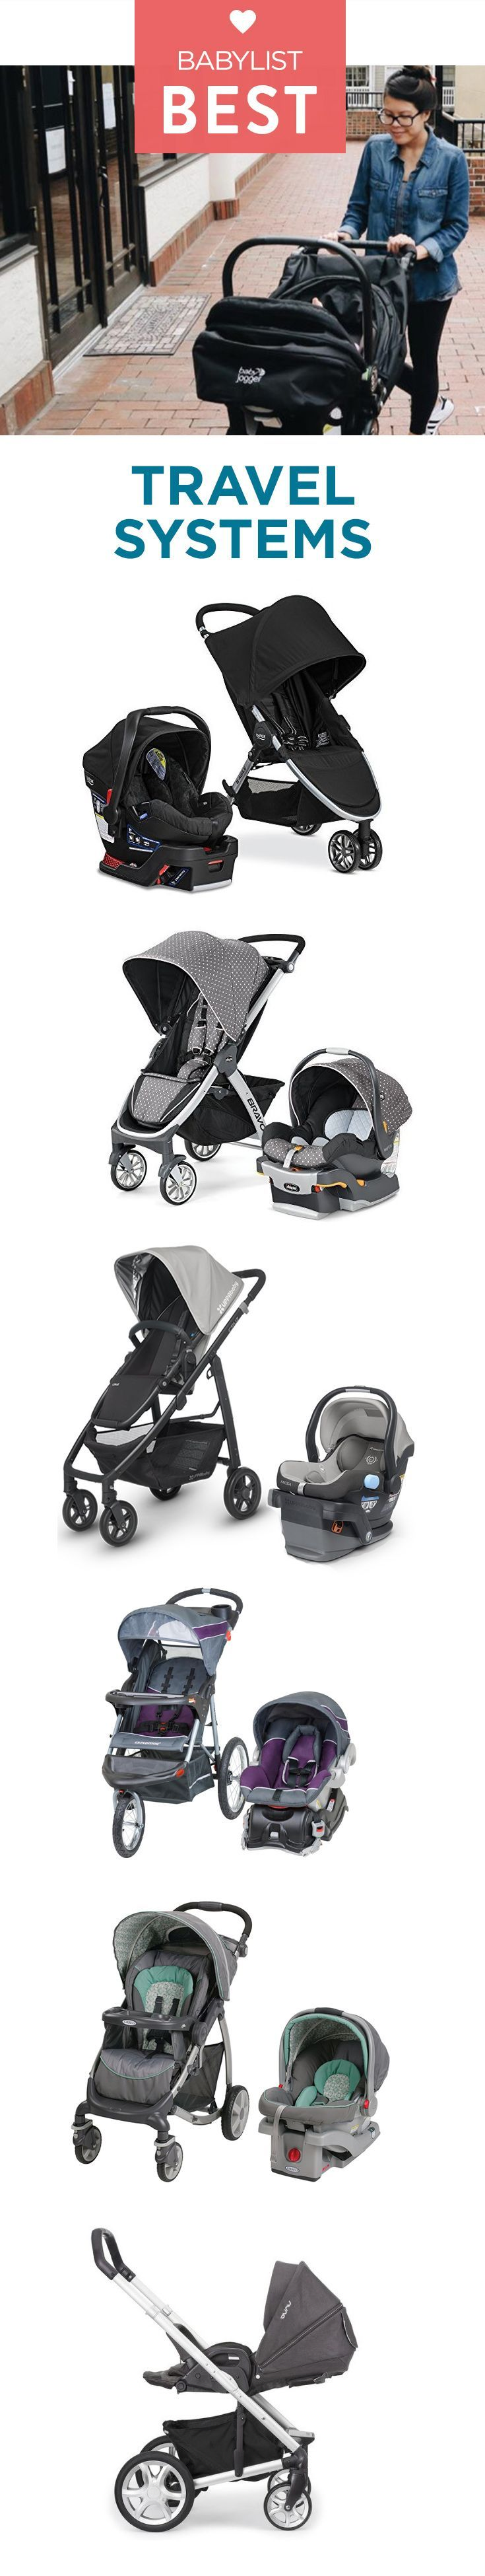 Looking for a car seat and stroller that clip together? Whether you're hunting for a jogging stroller or a luxury bassinet, these best six travel systems have got you covered.